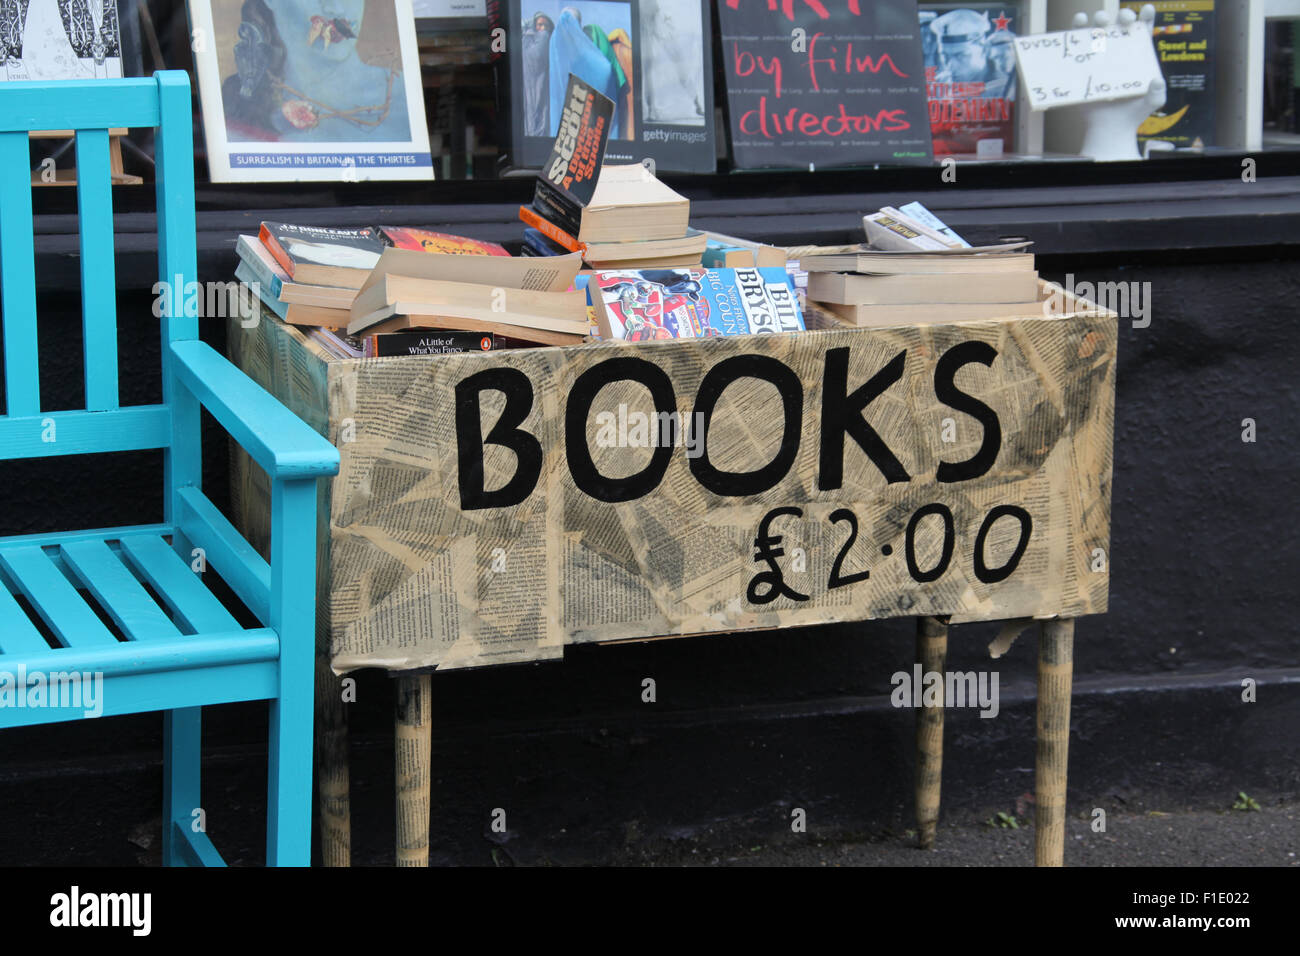 Second-hand books for sale outside a shop on Abbeydale Road in Sheffield - Stock Image